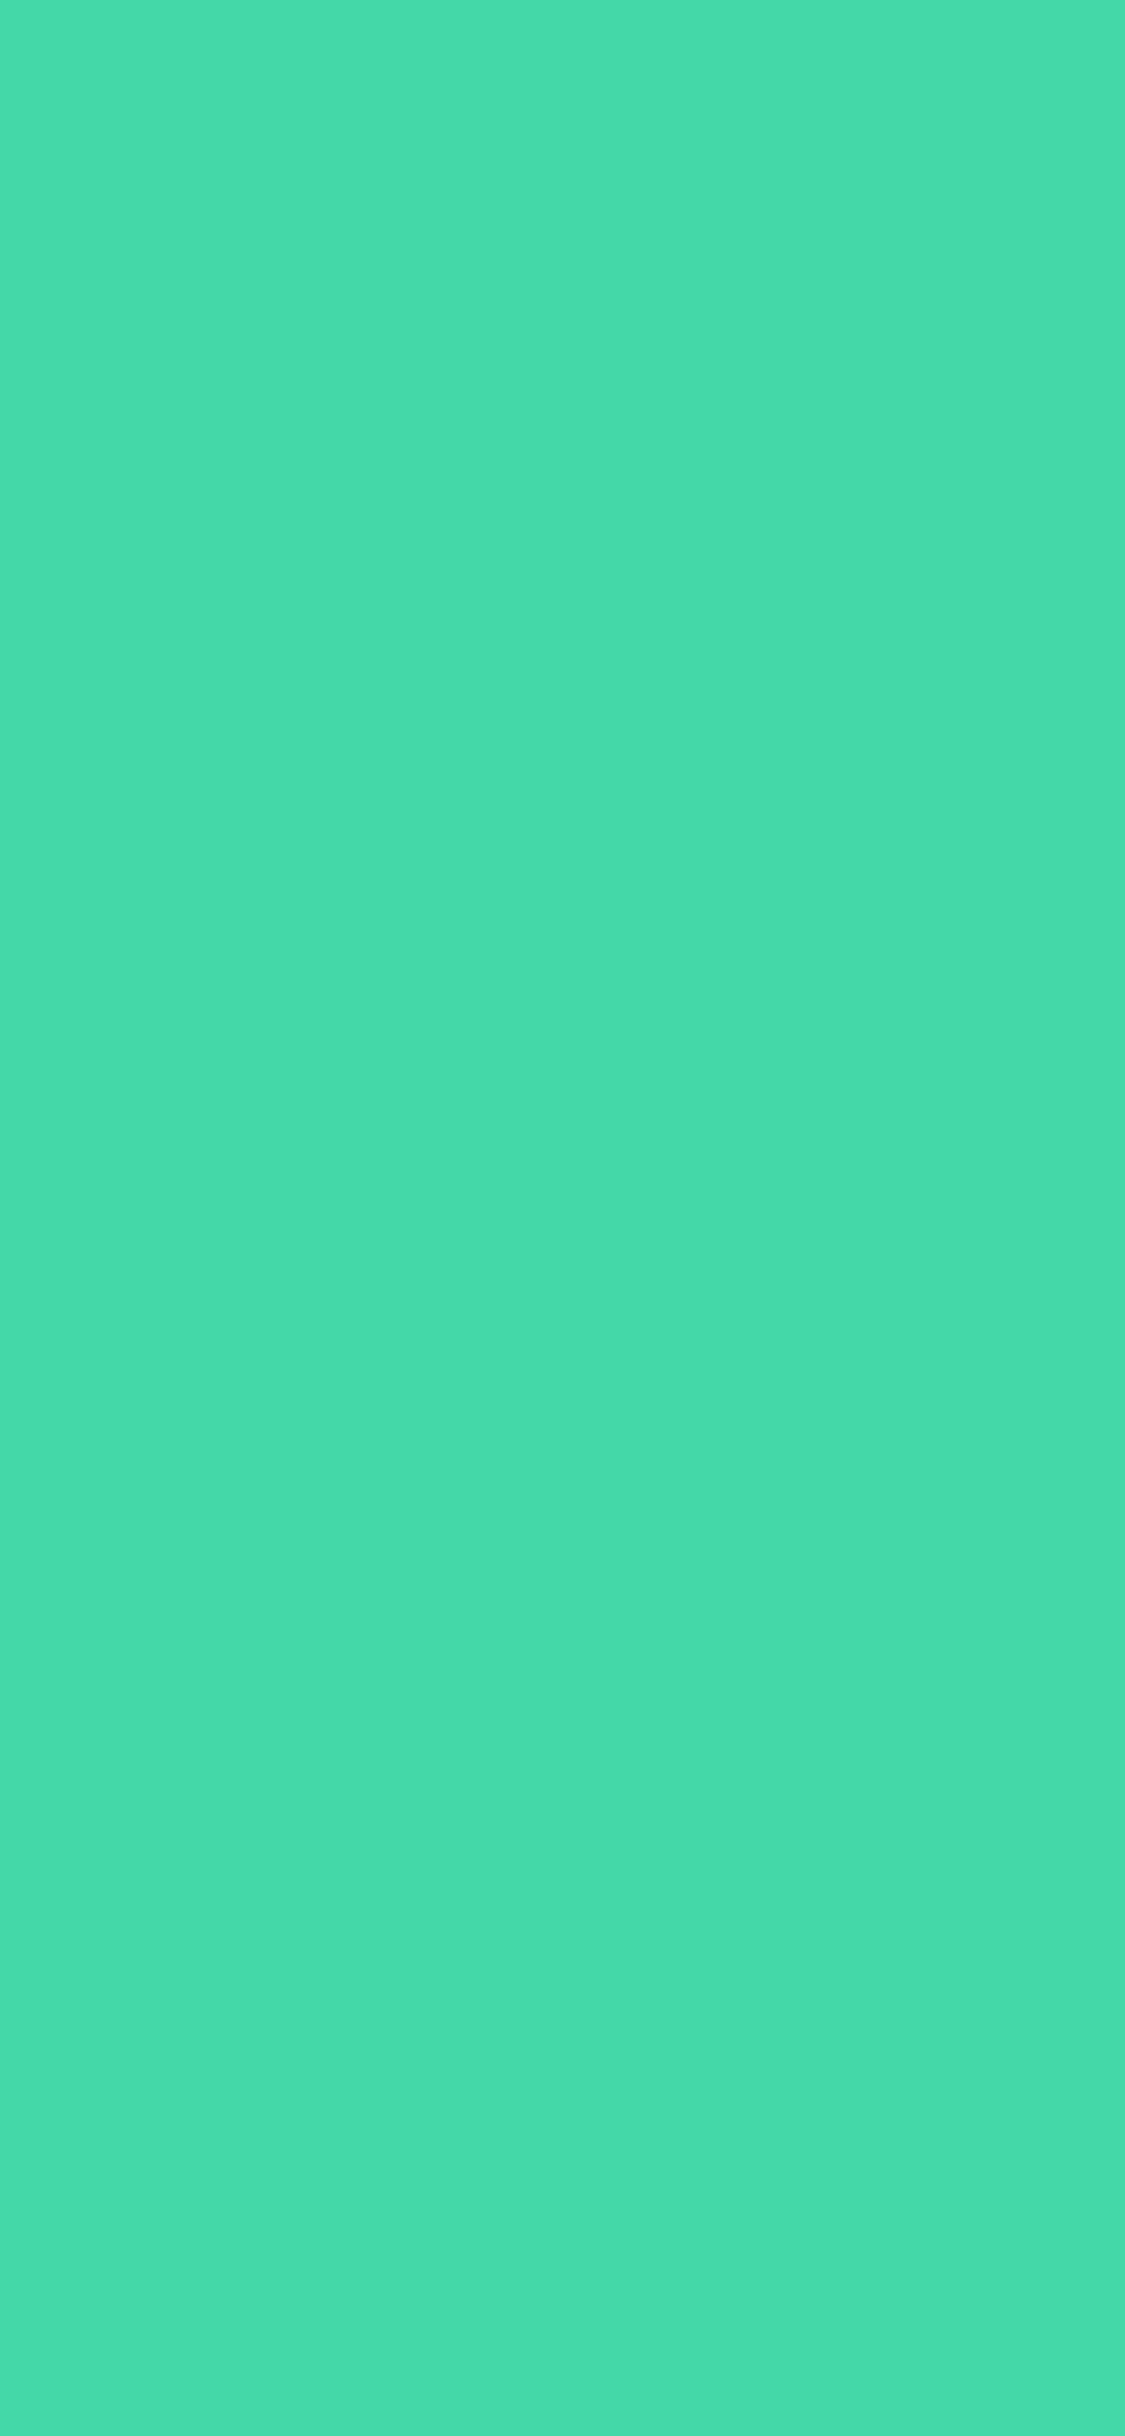 1125x2436 Eucalyptus Solid Color Background